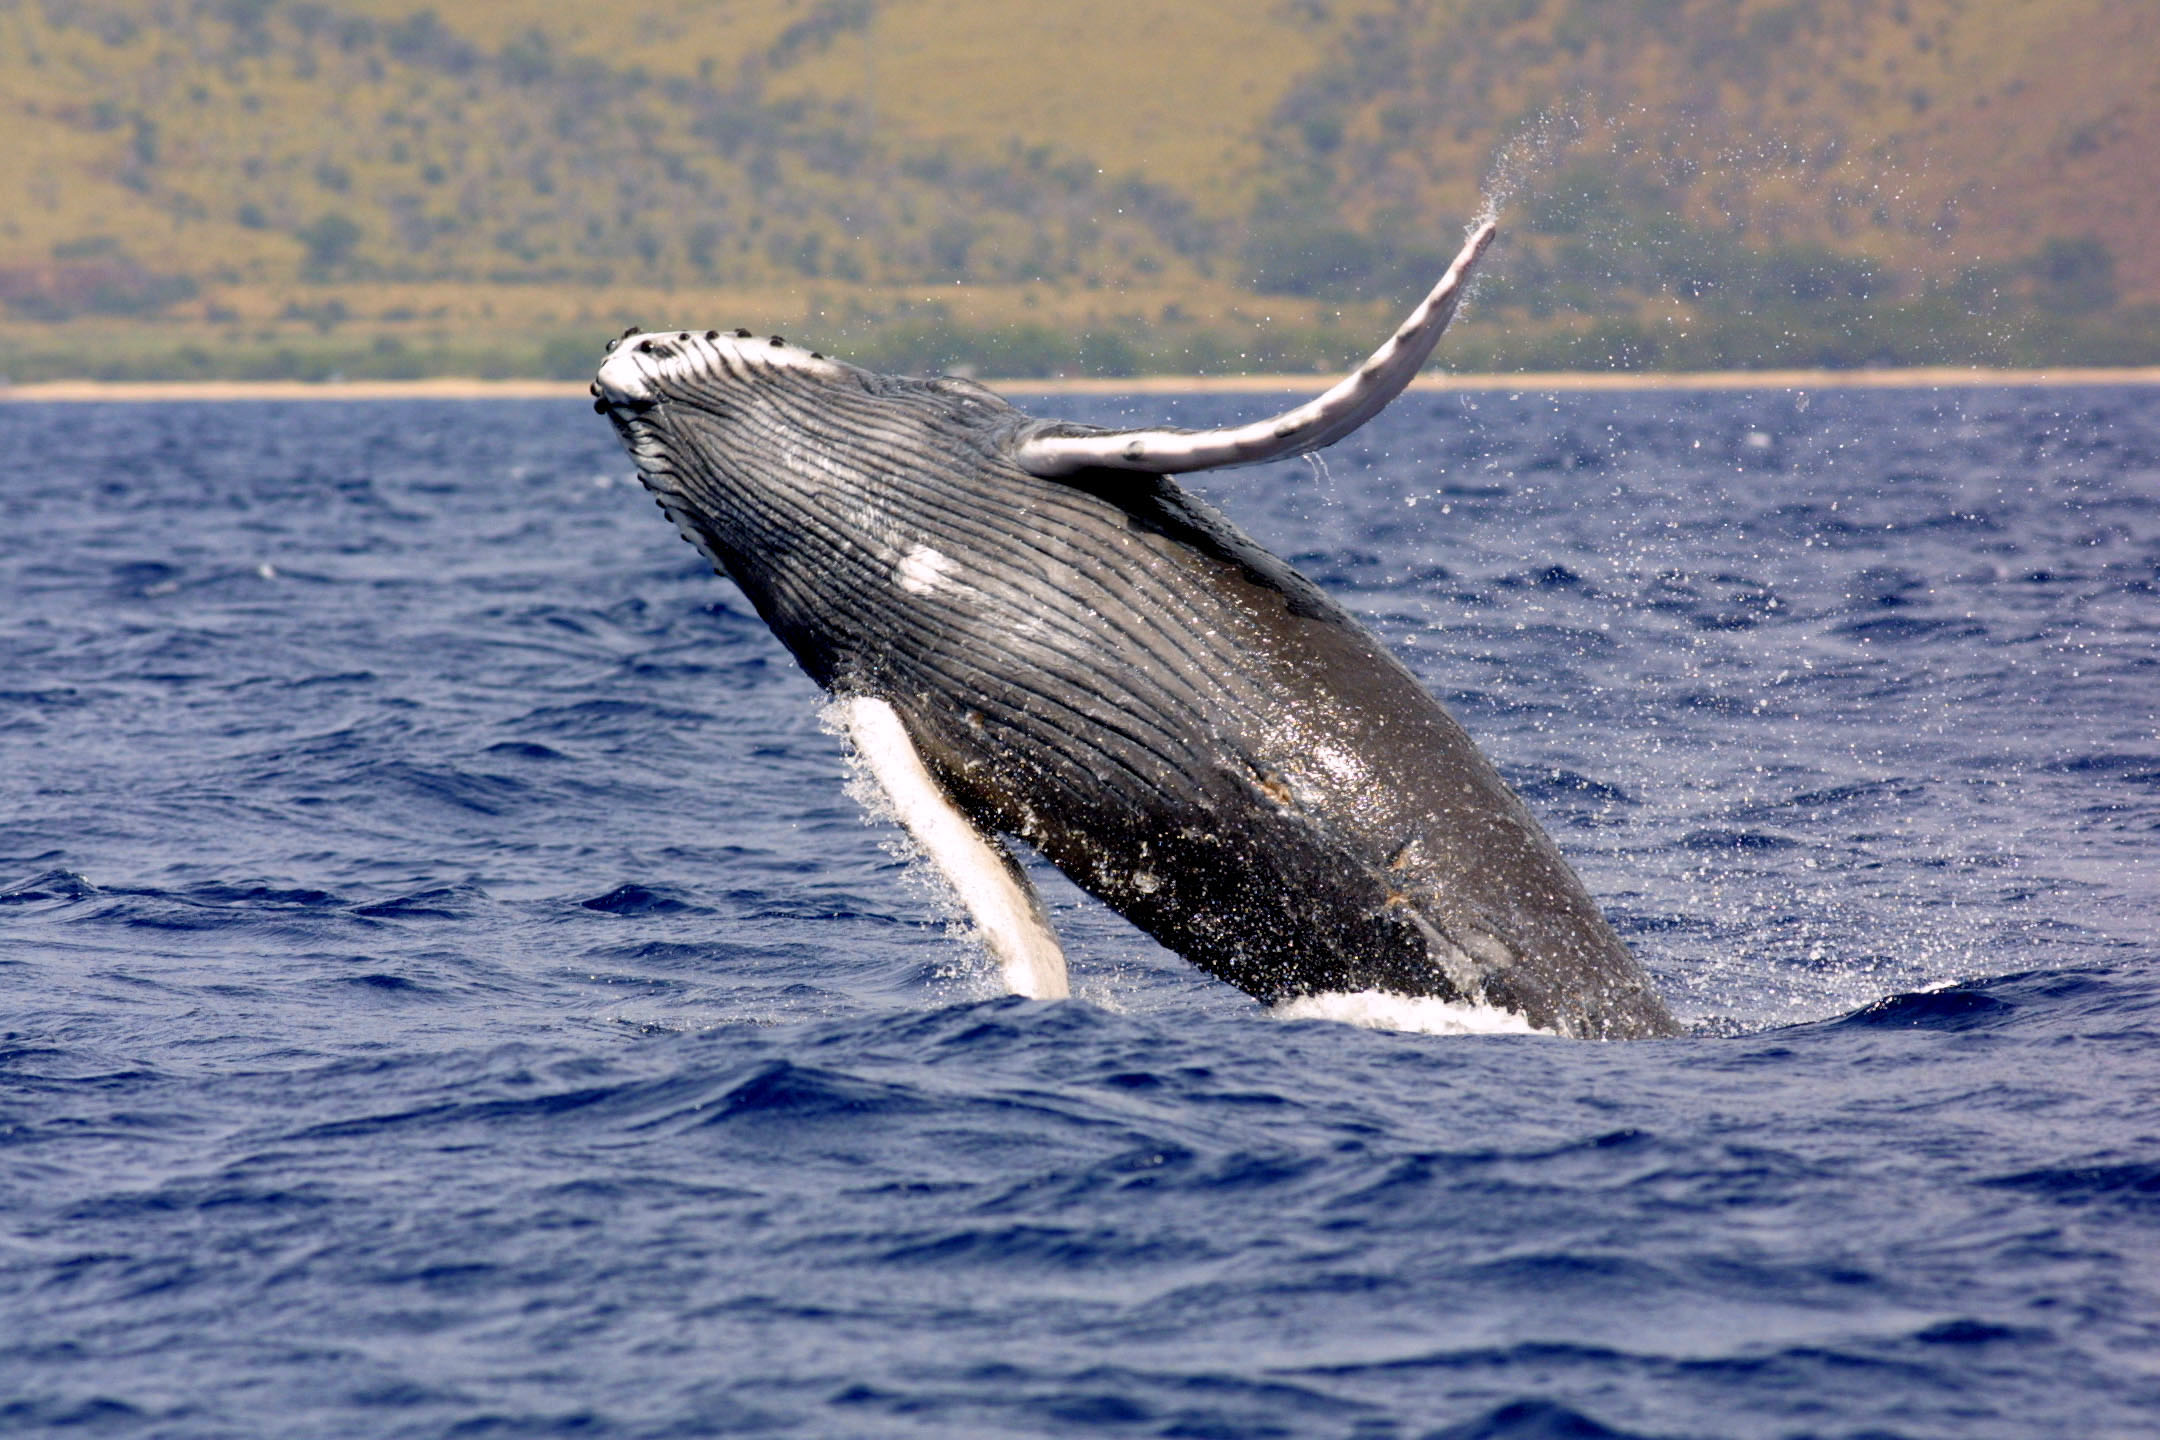 Lawsuit Settled to Protect Pacific Humpback Whale Habitat